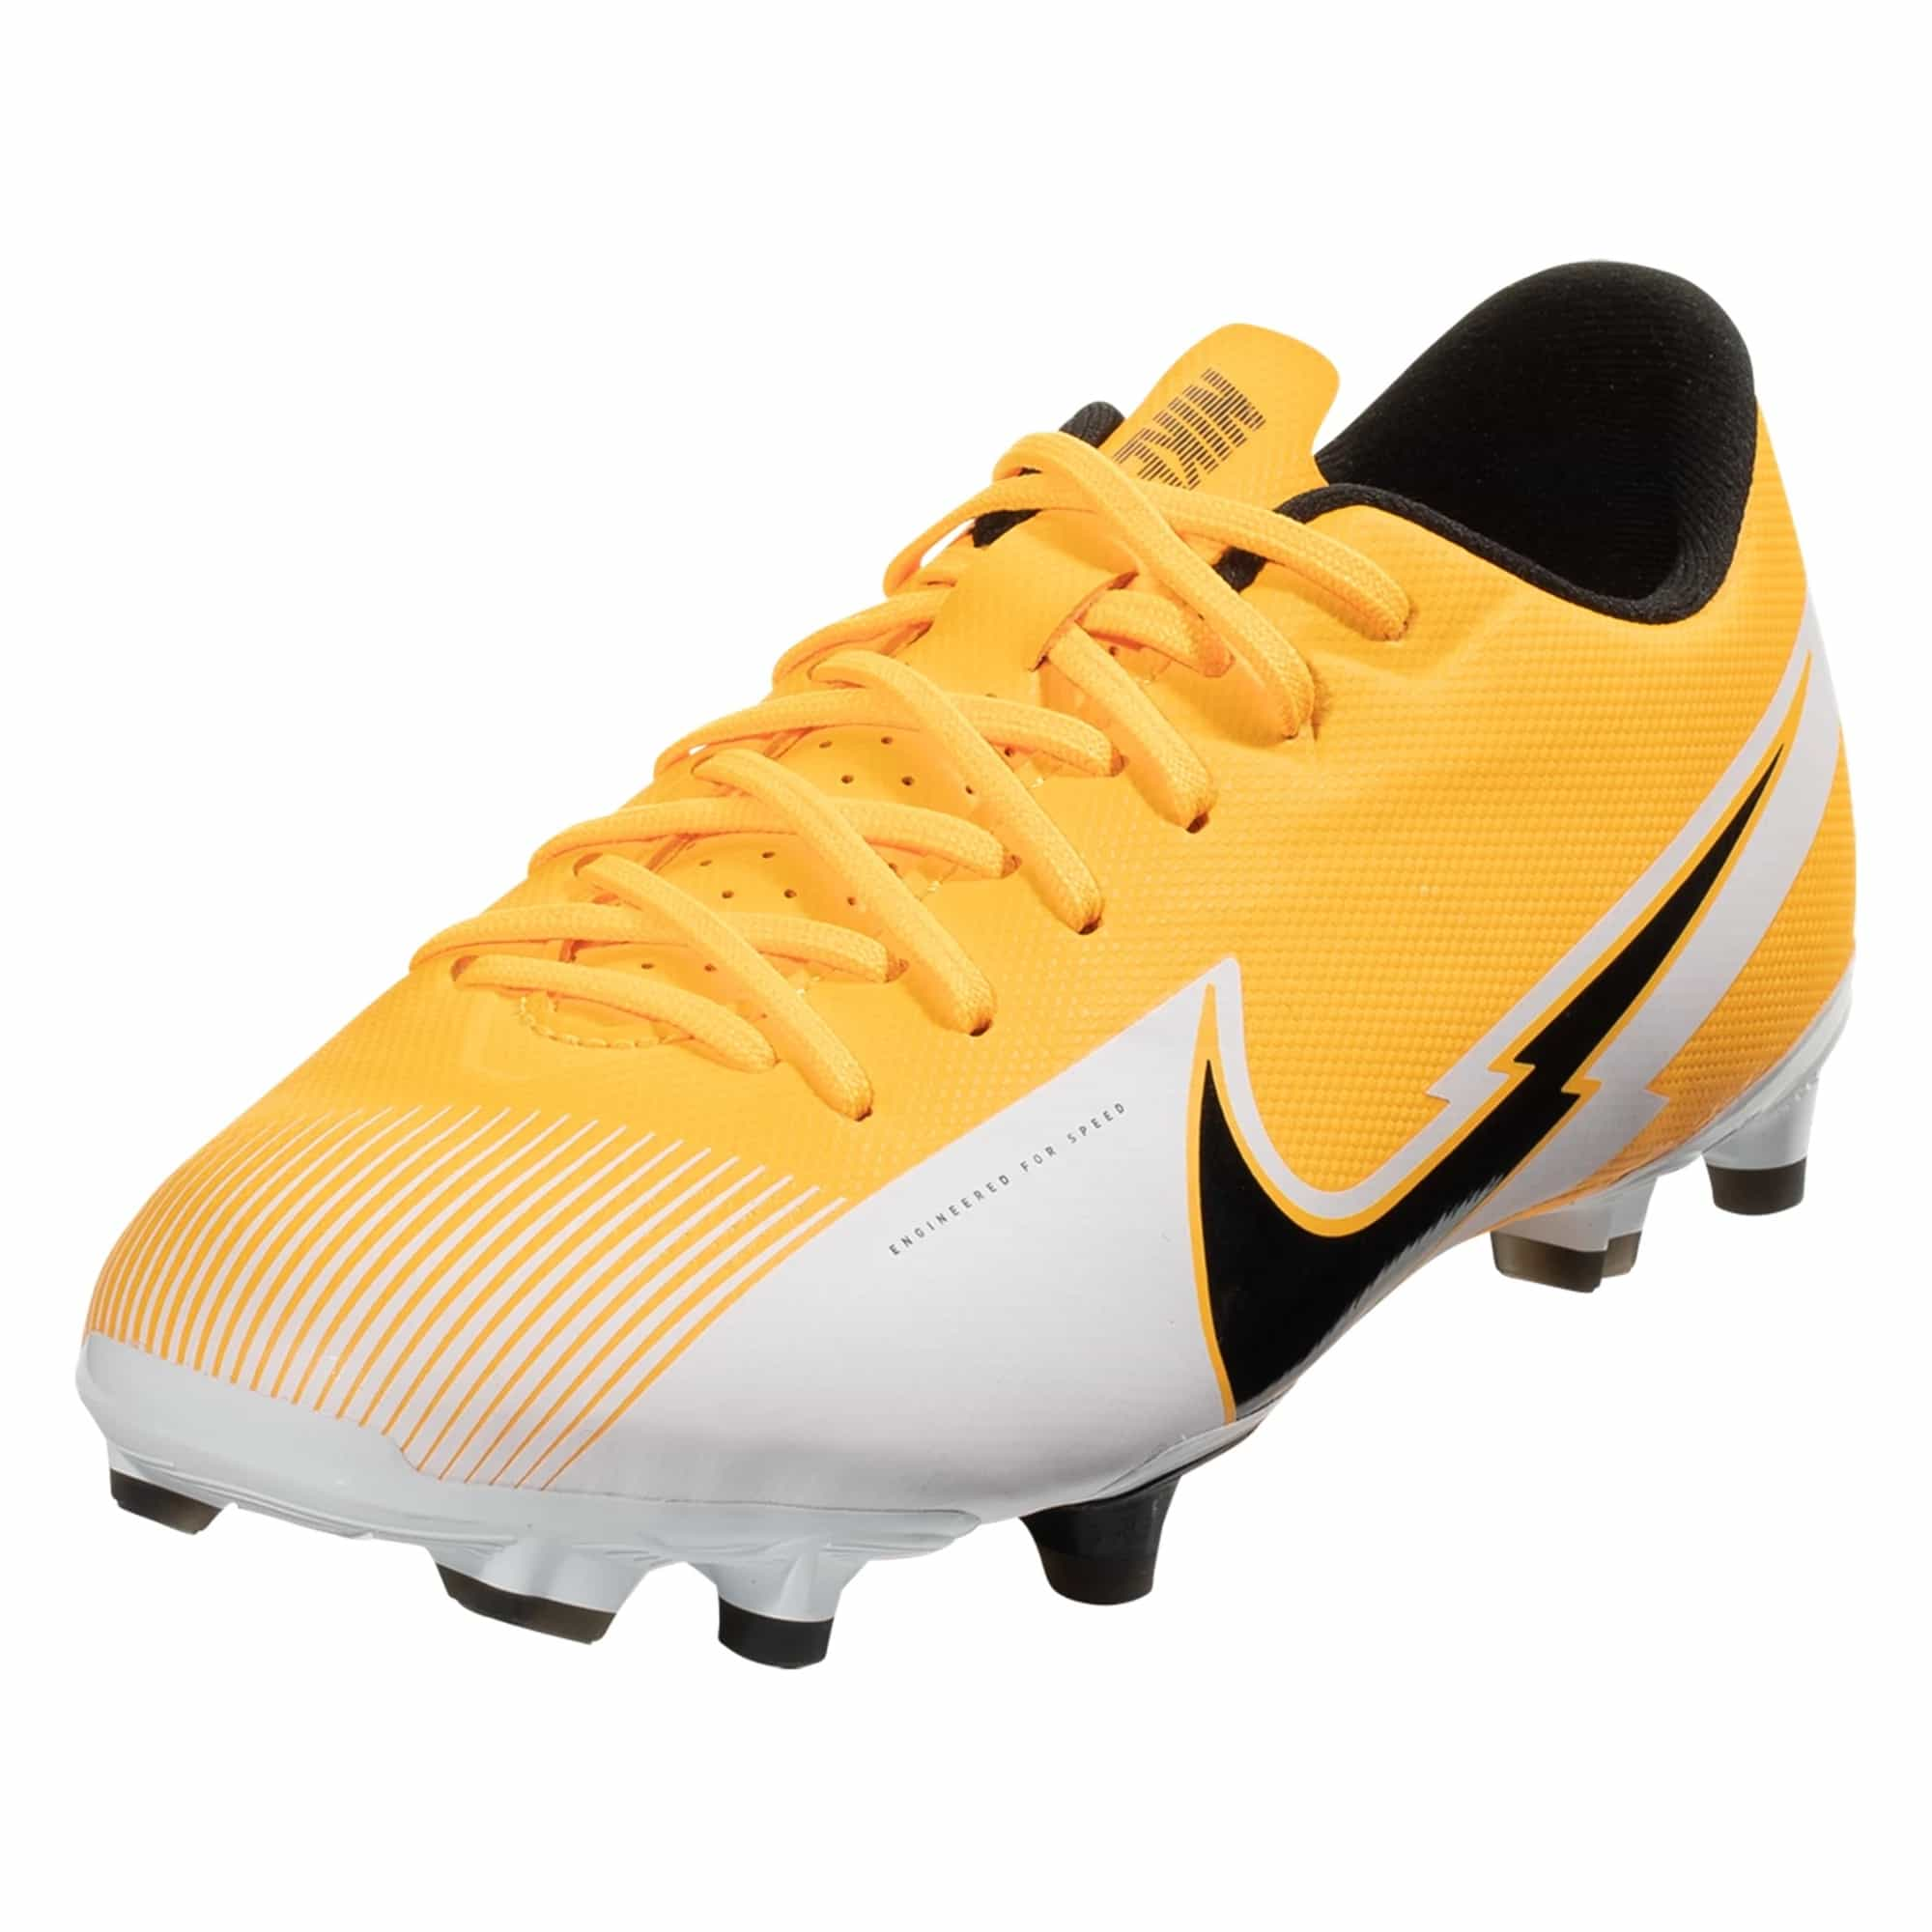 Nike Junior Mercurial Vapor 13 Academy FG/MG Soccer Cleat